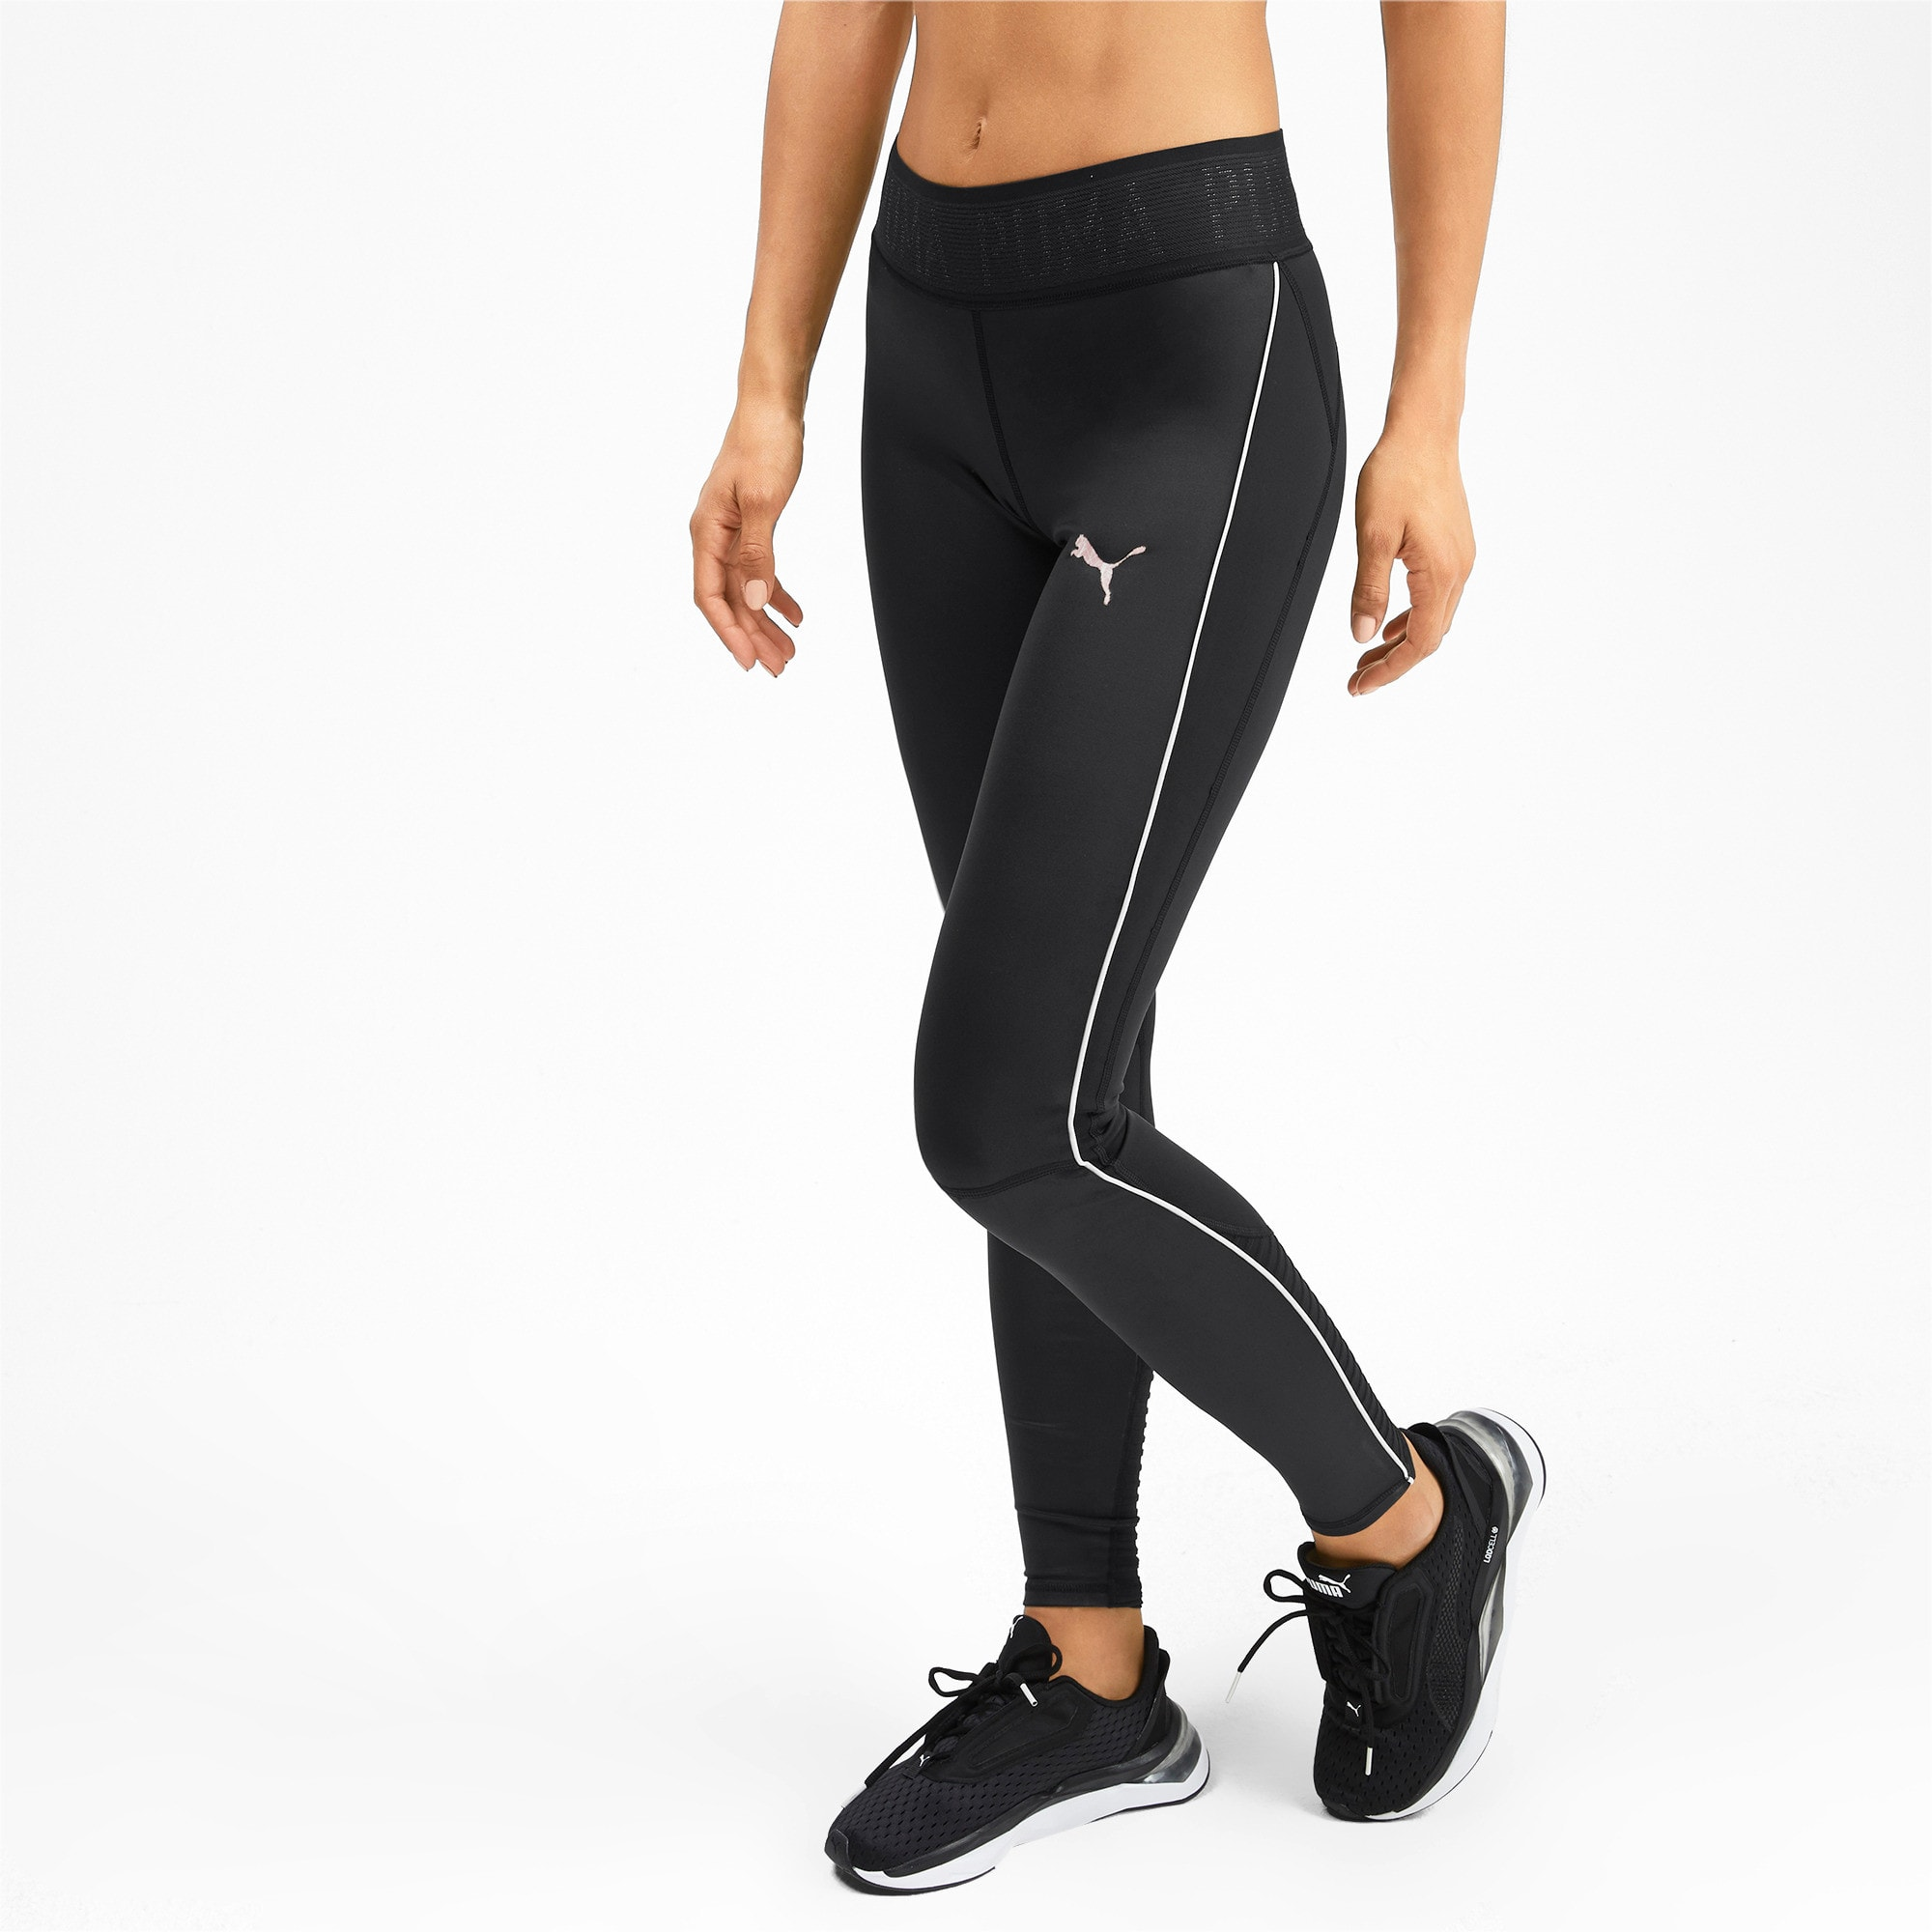 Thumbnail 1 of SHIFT Women's Training Leggings, Puma Black, medium